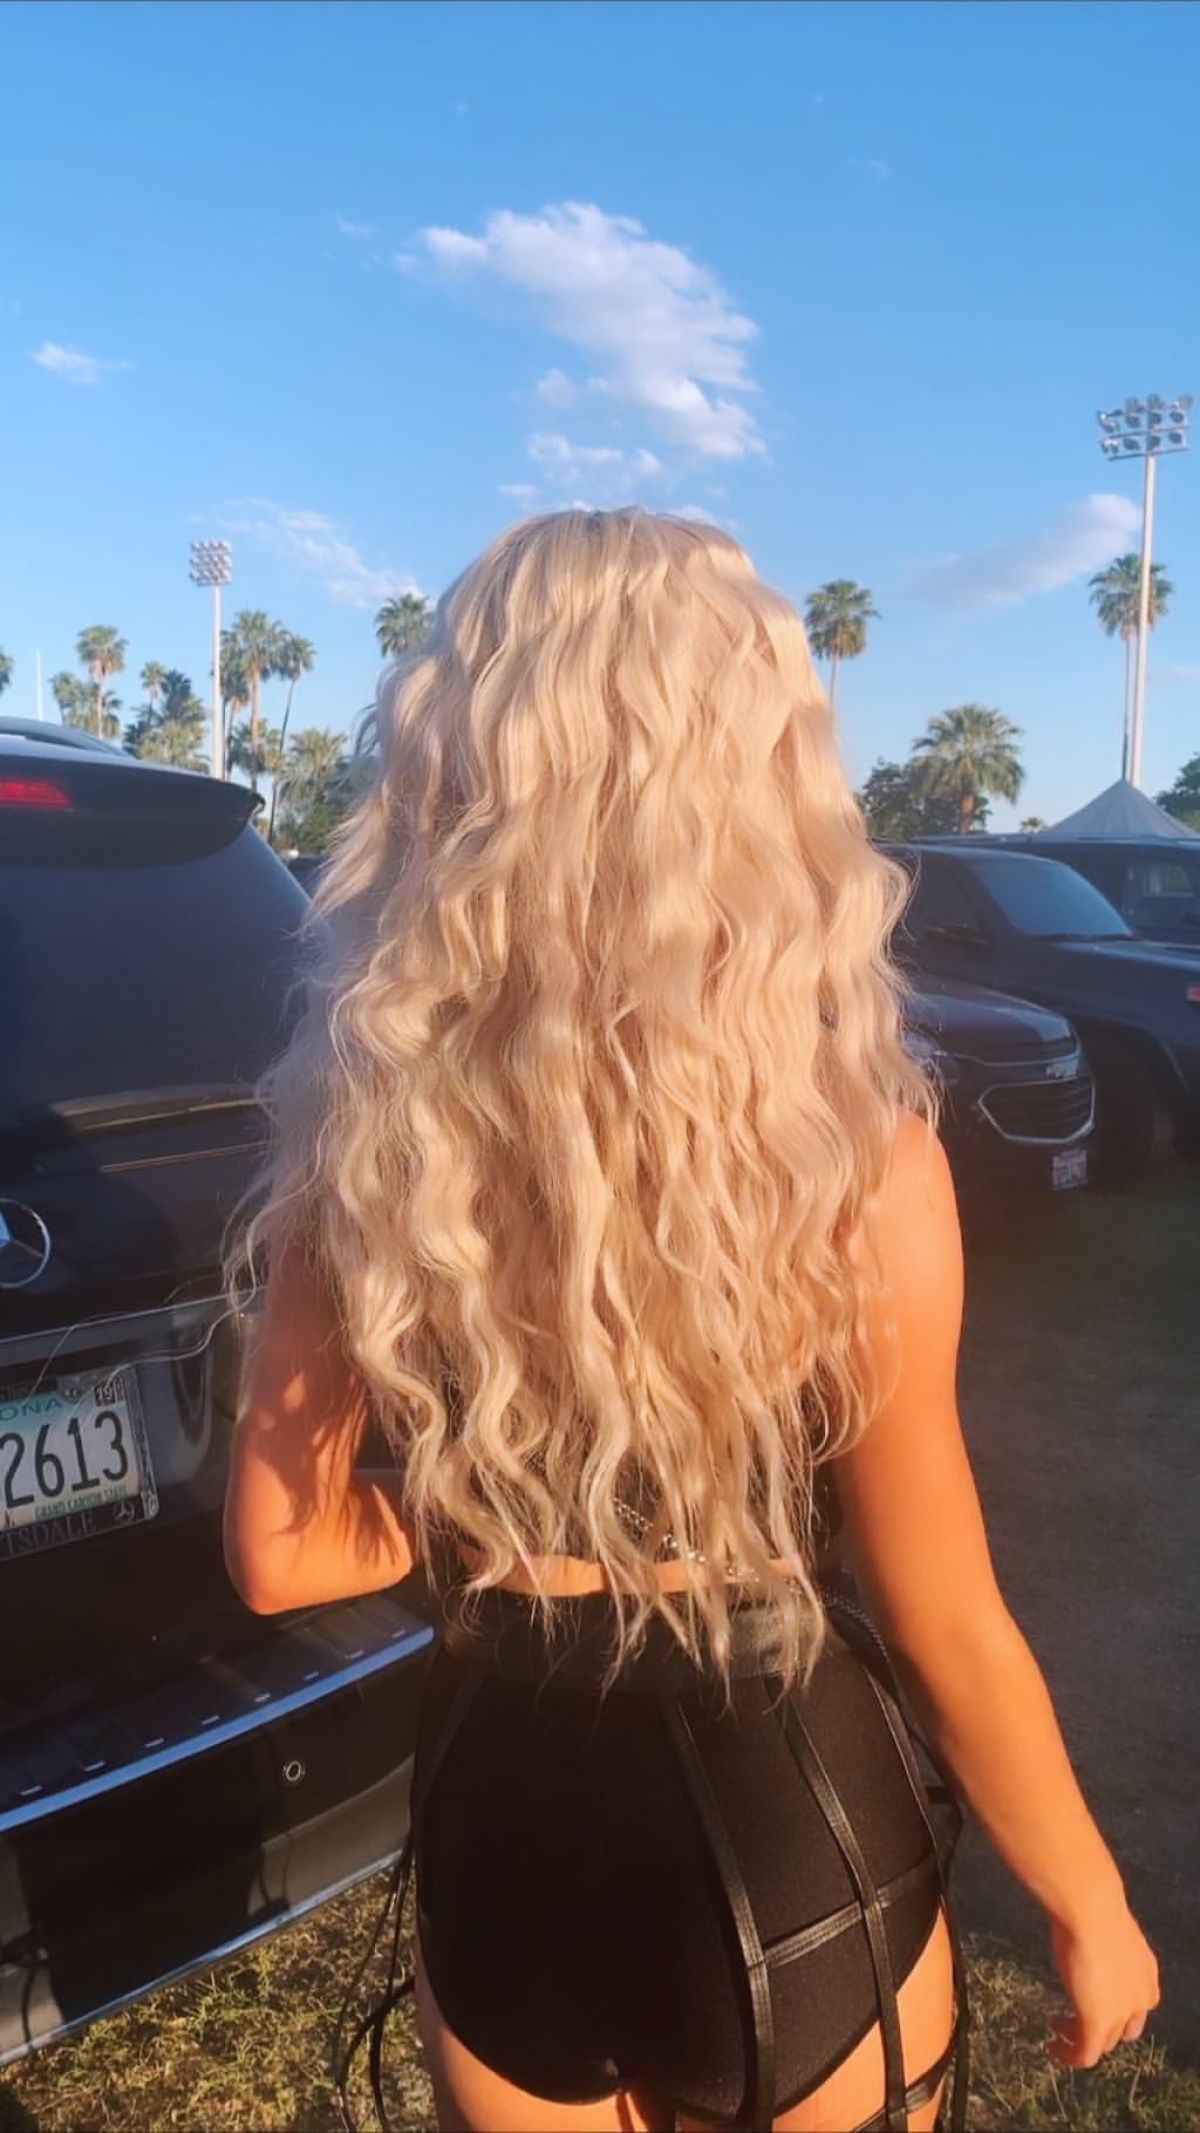 Loren Gray At Coachella Valley Instagram Pictures And Video 04 20 2019 Hawtcelebs